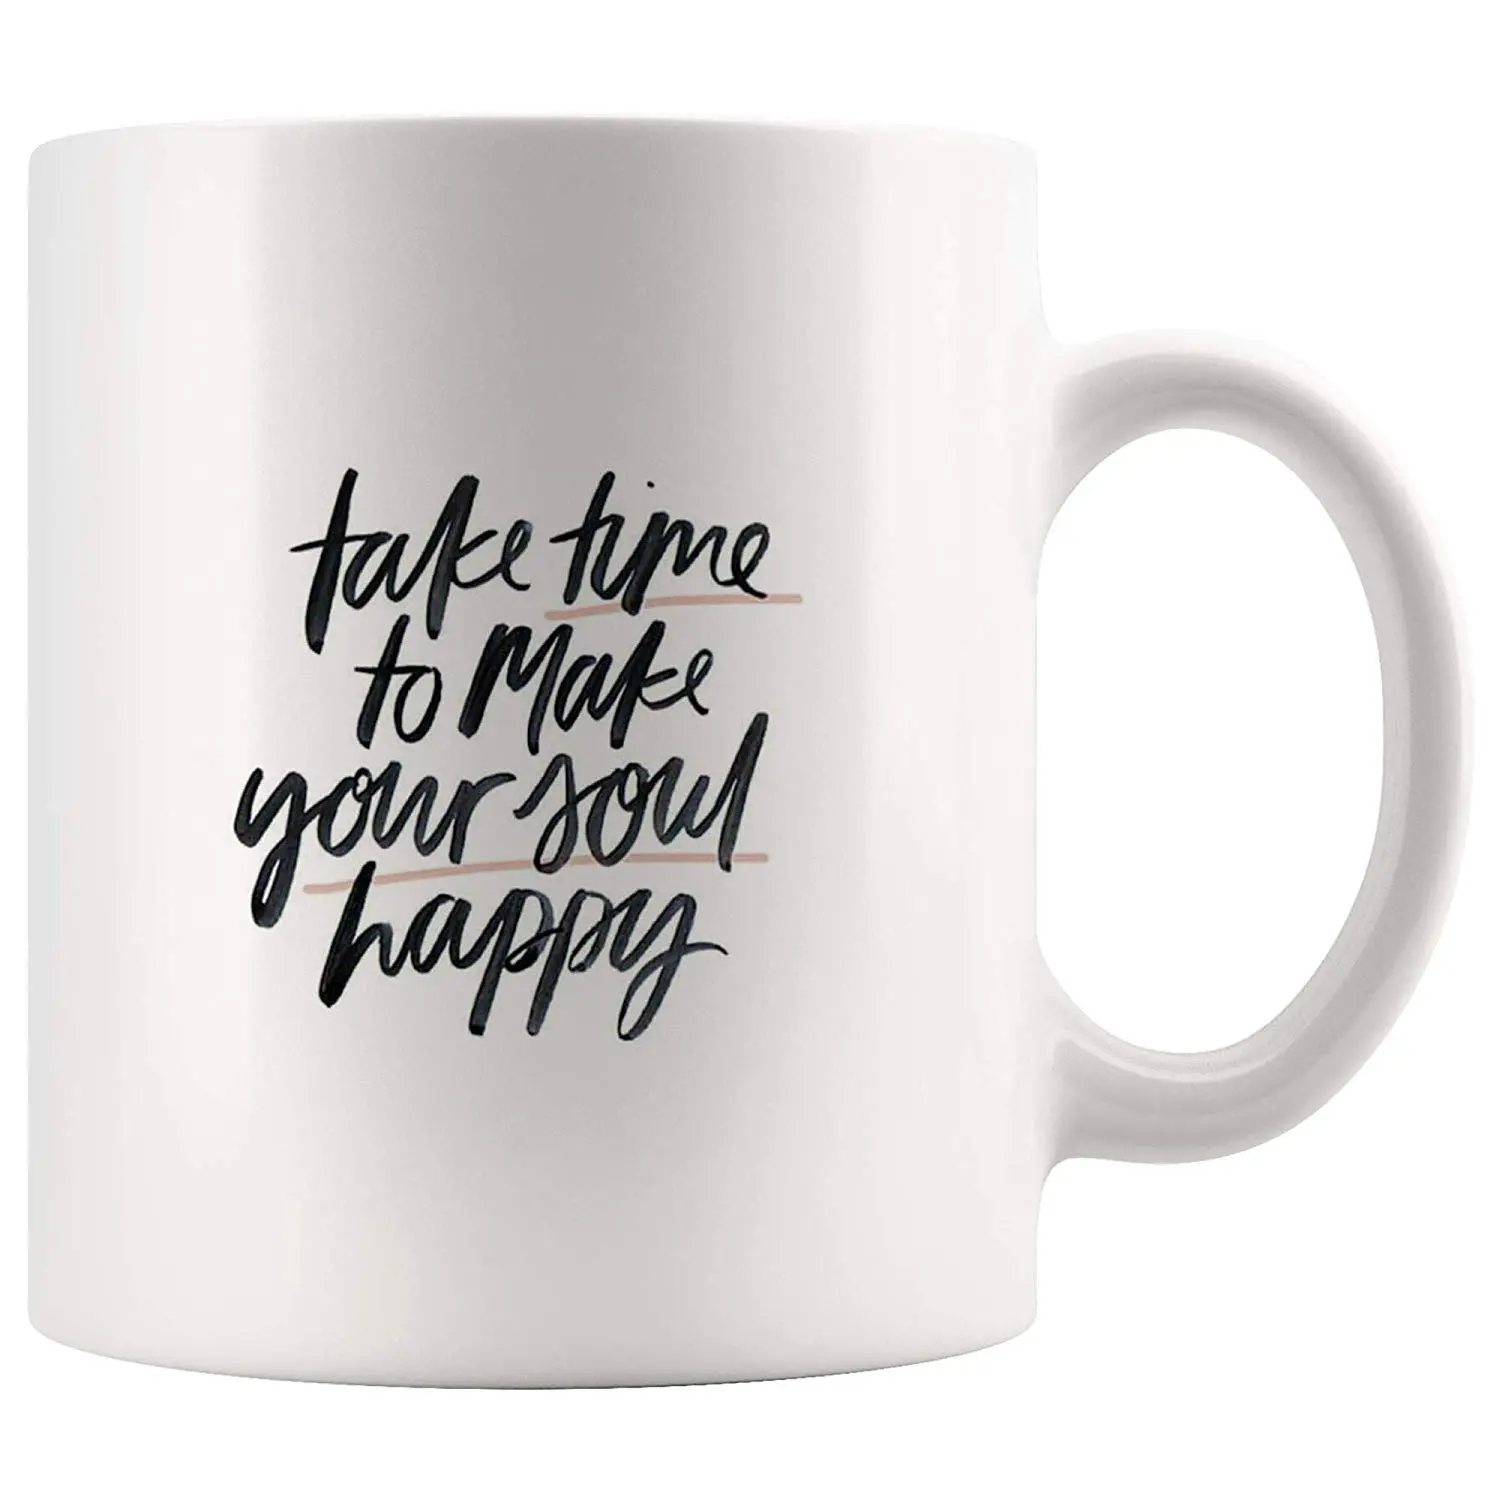 Amazon.com: Take Time Make Soul Happy Funny Mugs - Joke Coffee Mug ... #coffeeTime